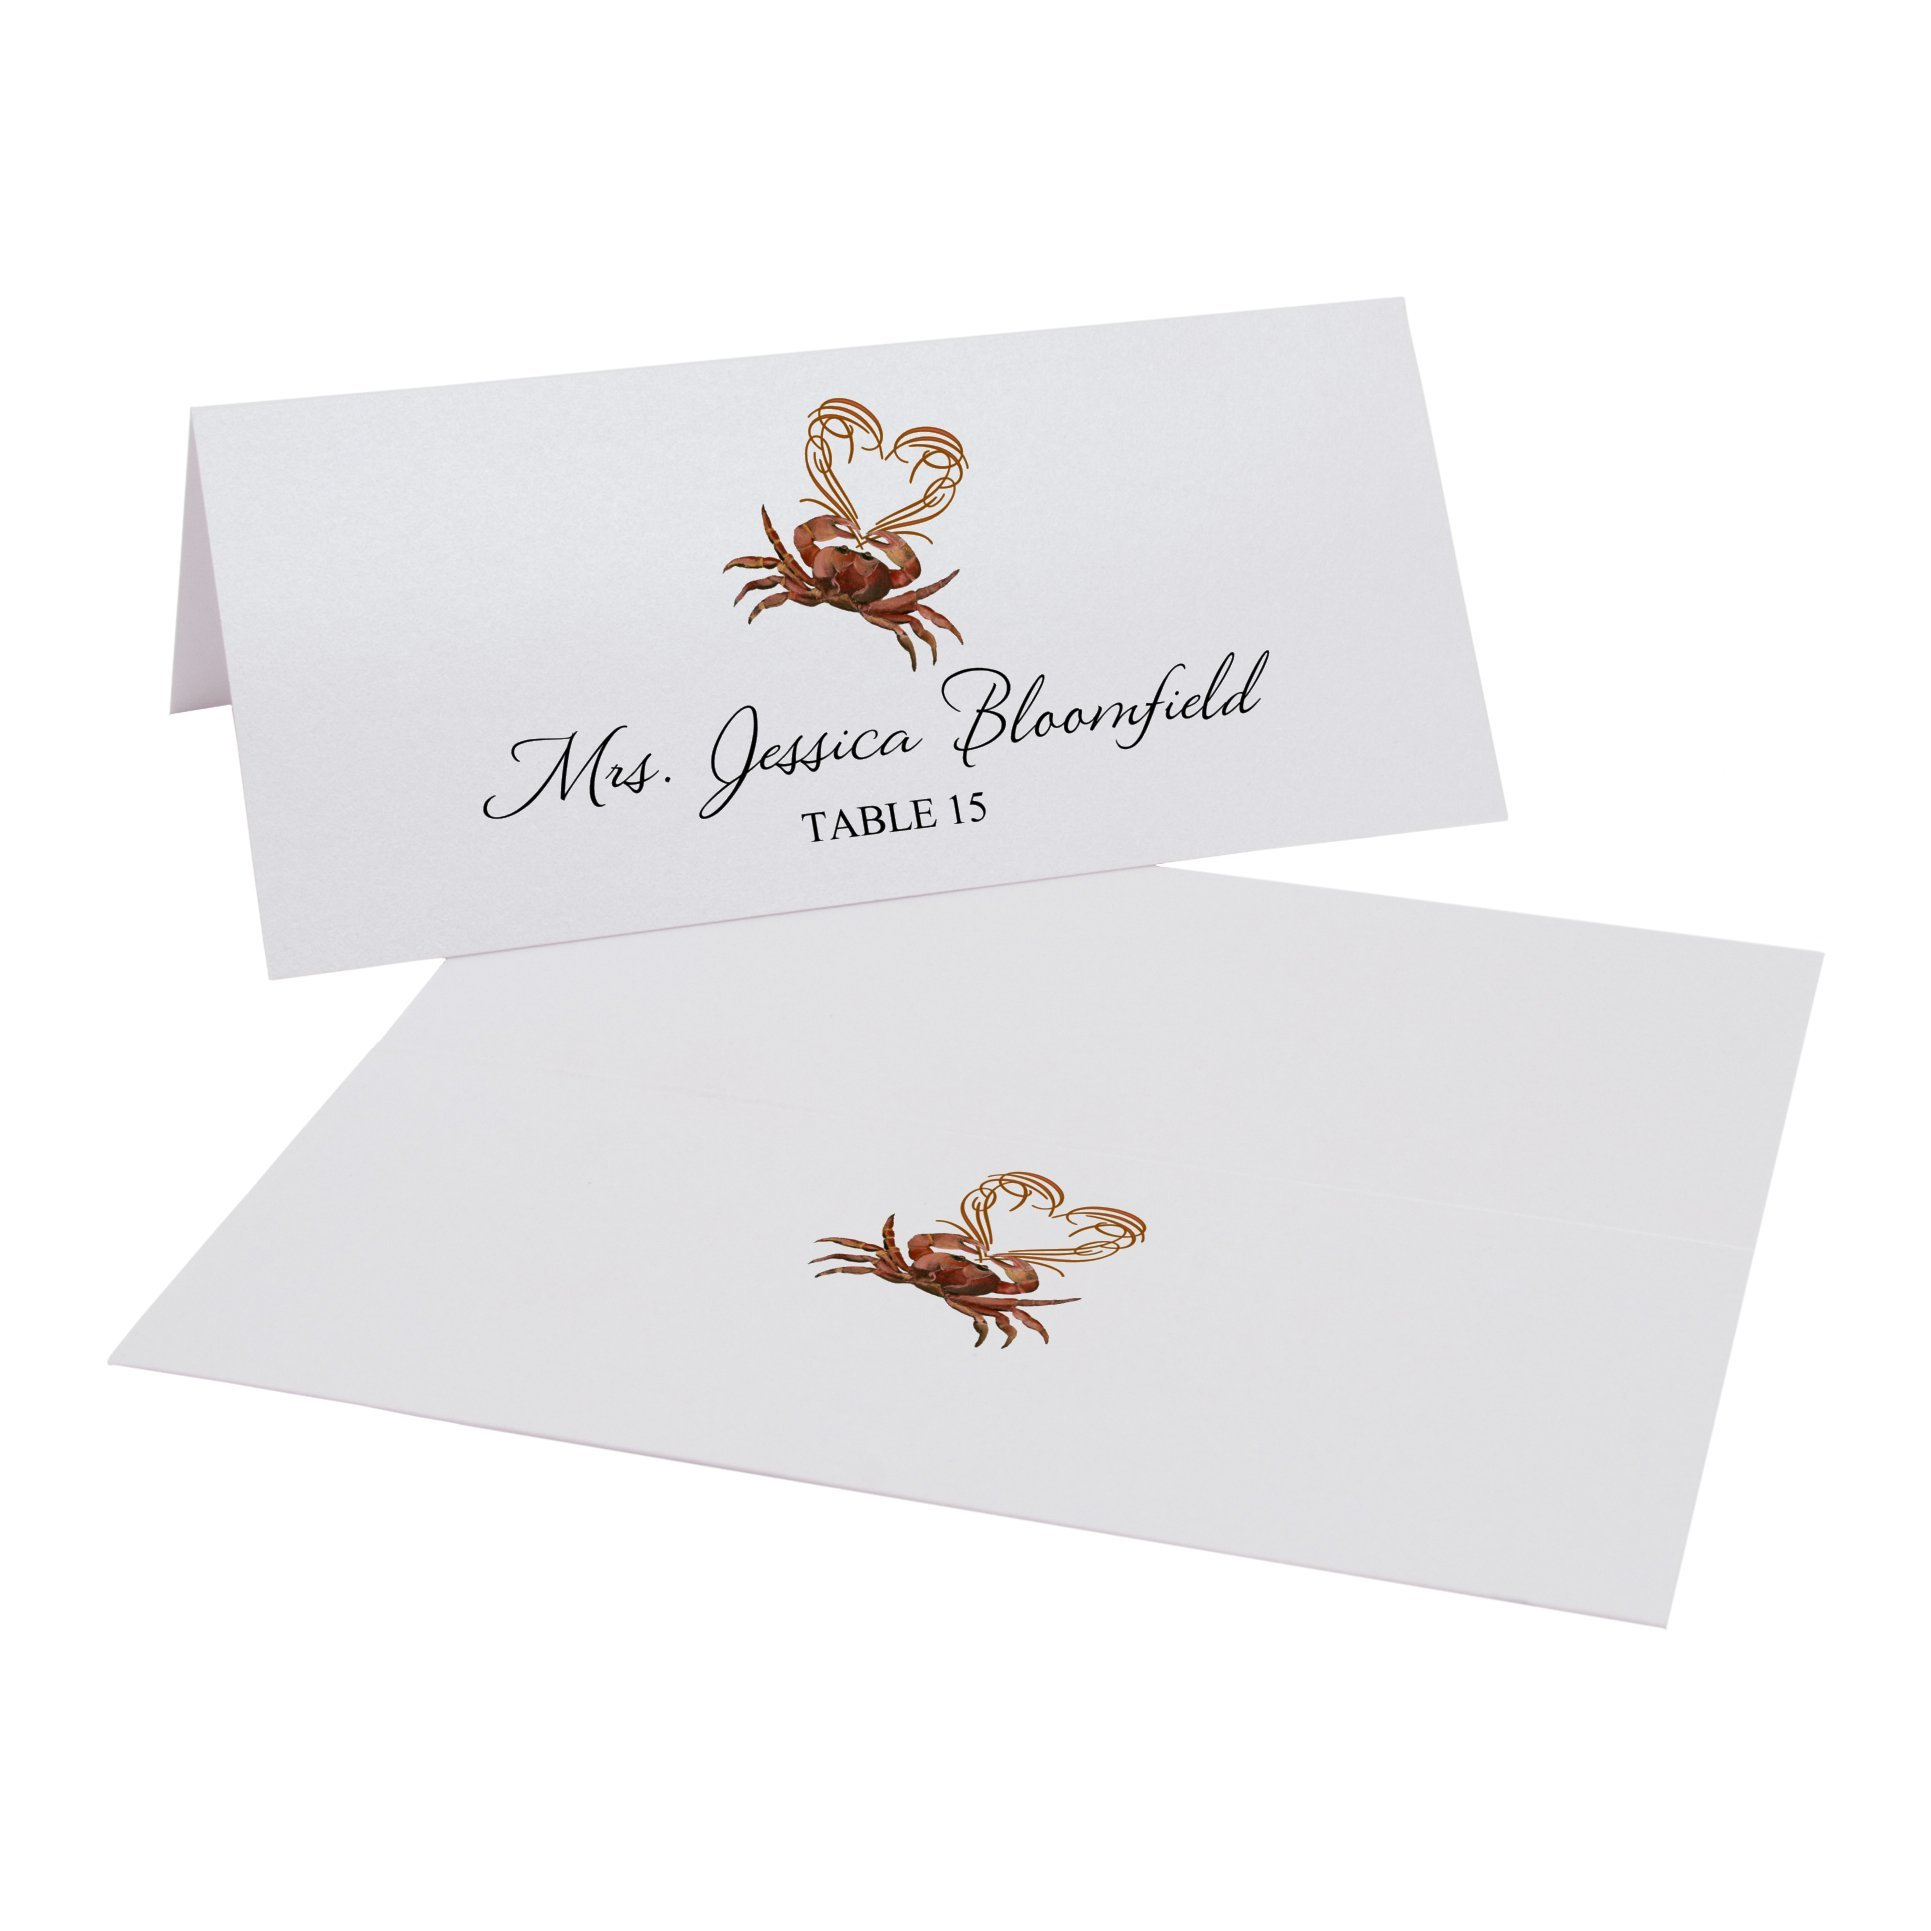 Crab and Heart Place Cards, Pearl White, Set of 375